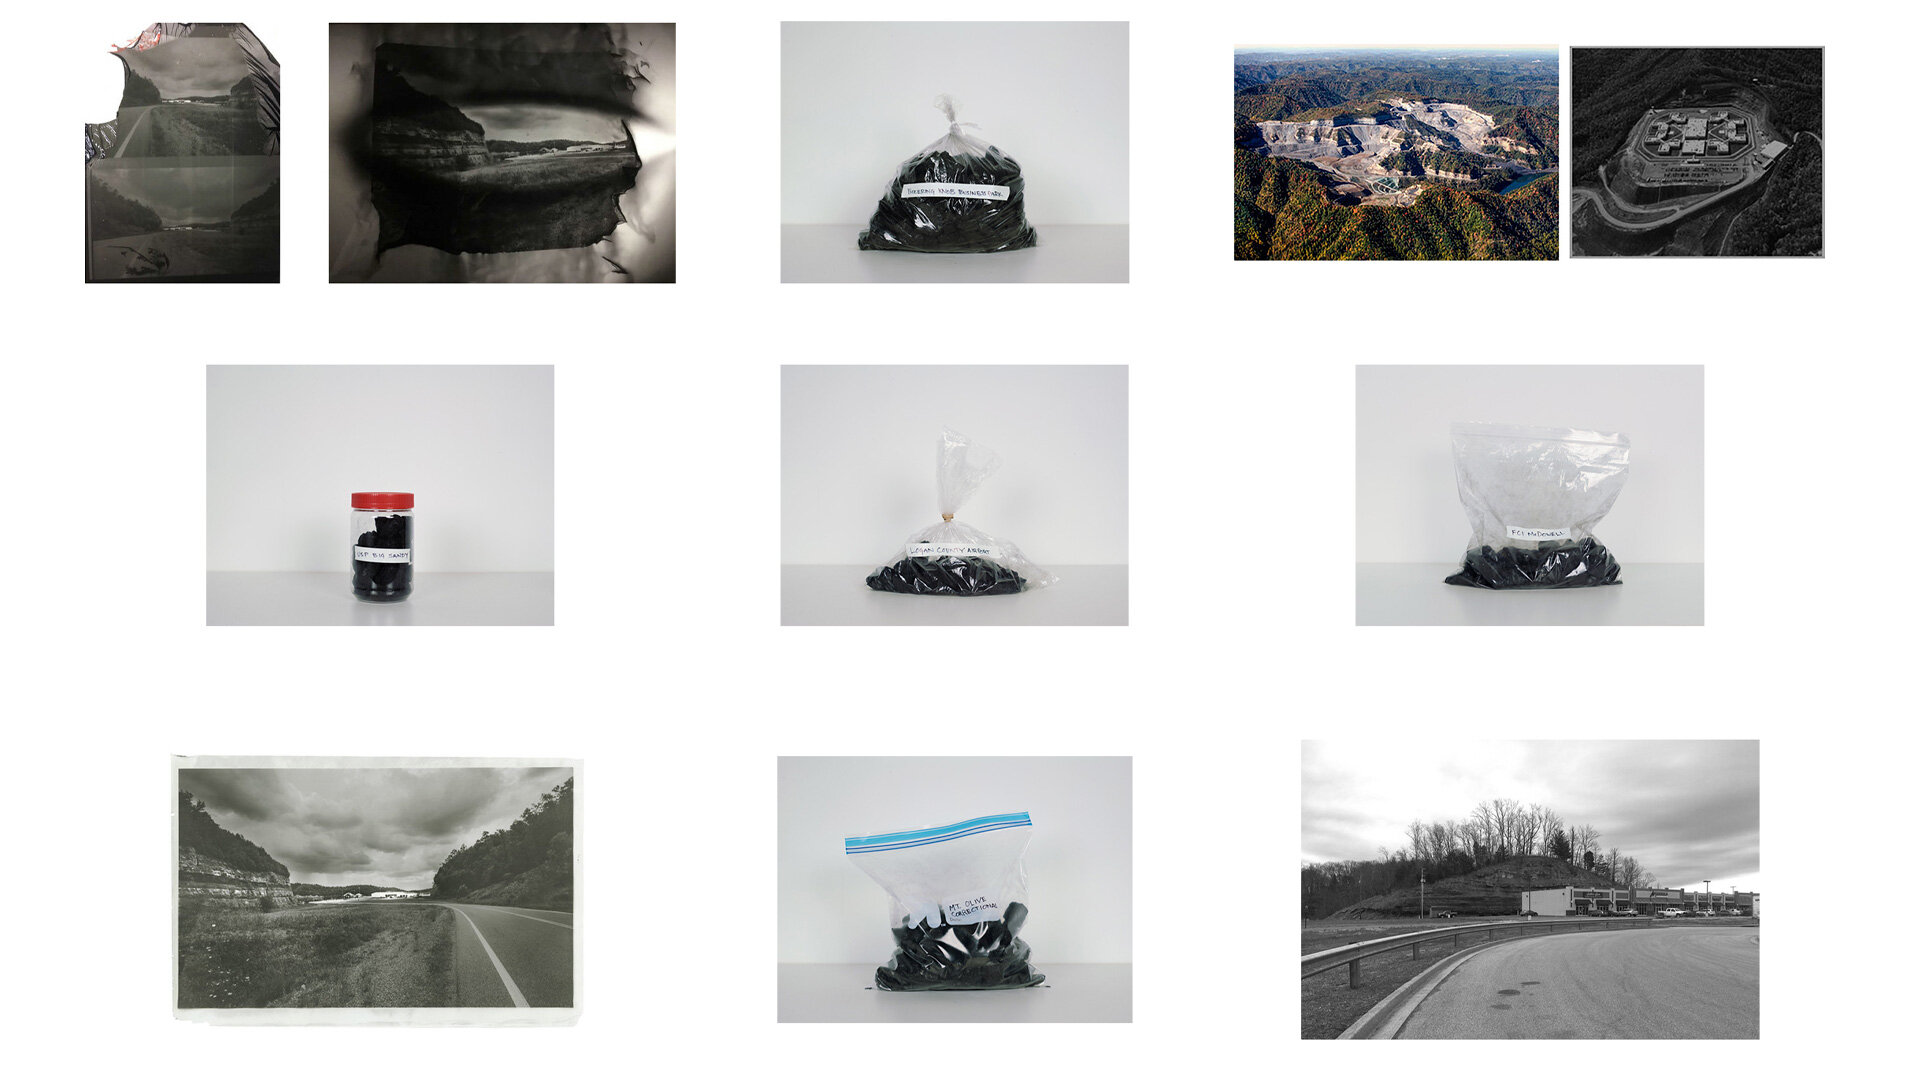 Images by Jonas Becker